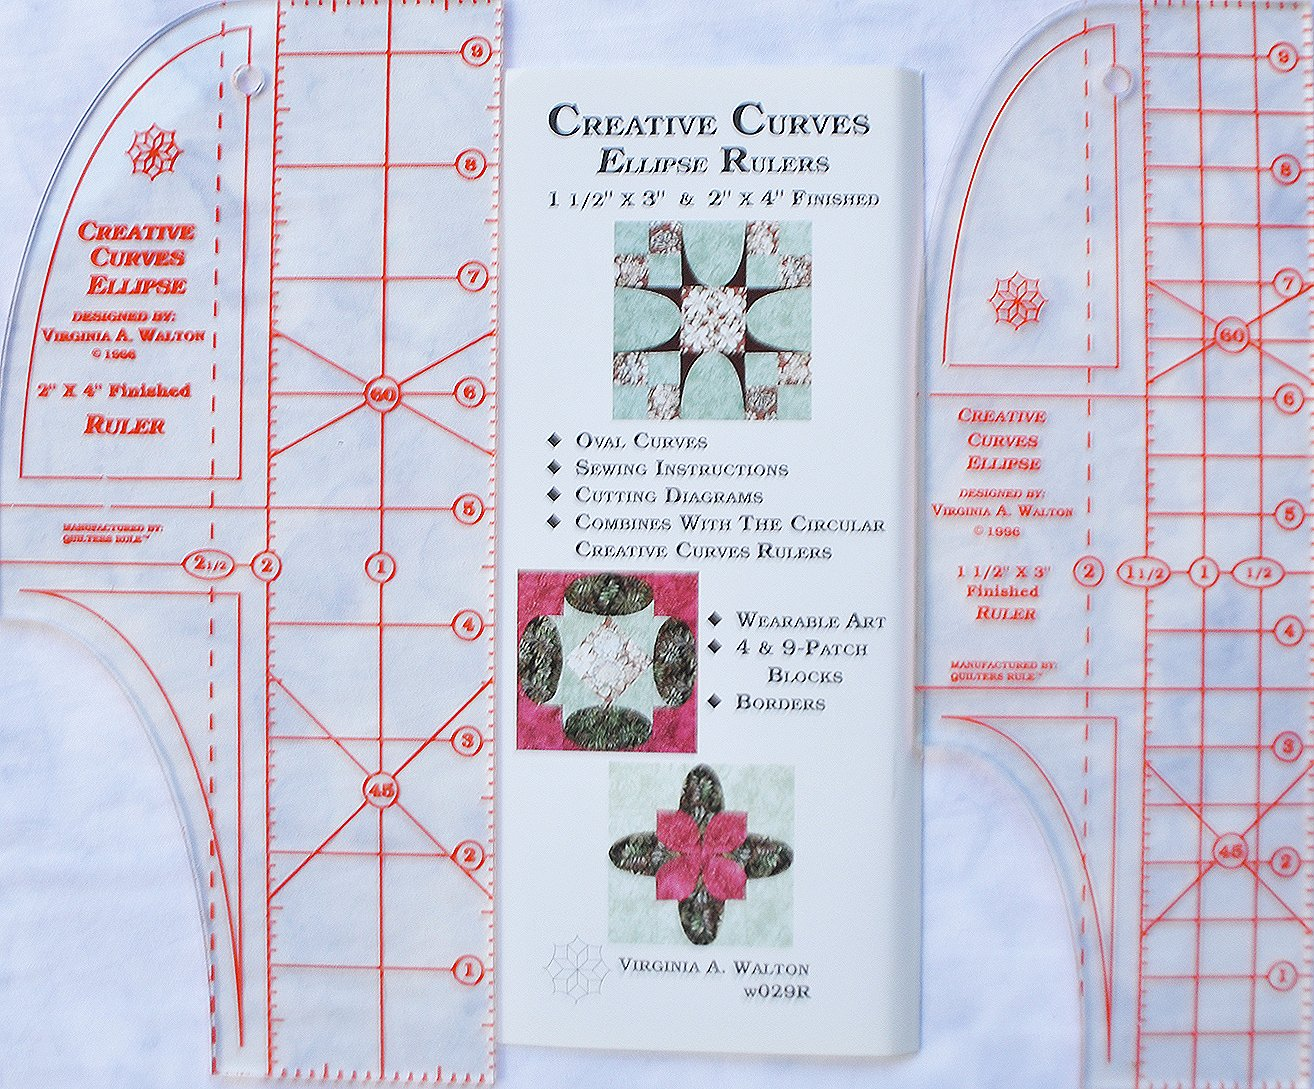 Creative Curves Ellipse Rulers (1 1/2 X 3 & 2 X 4)